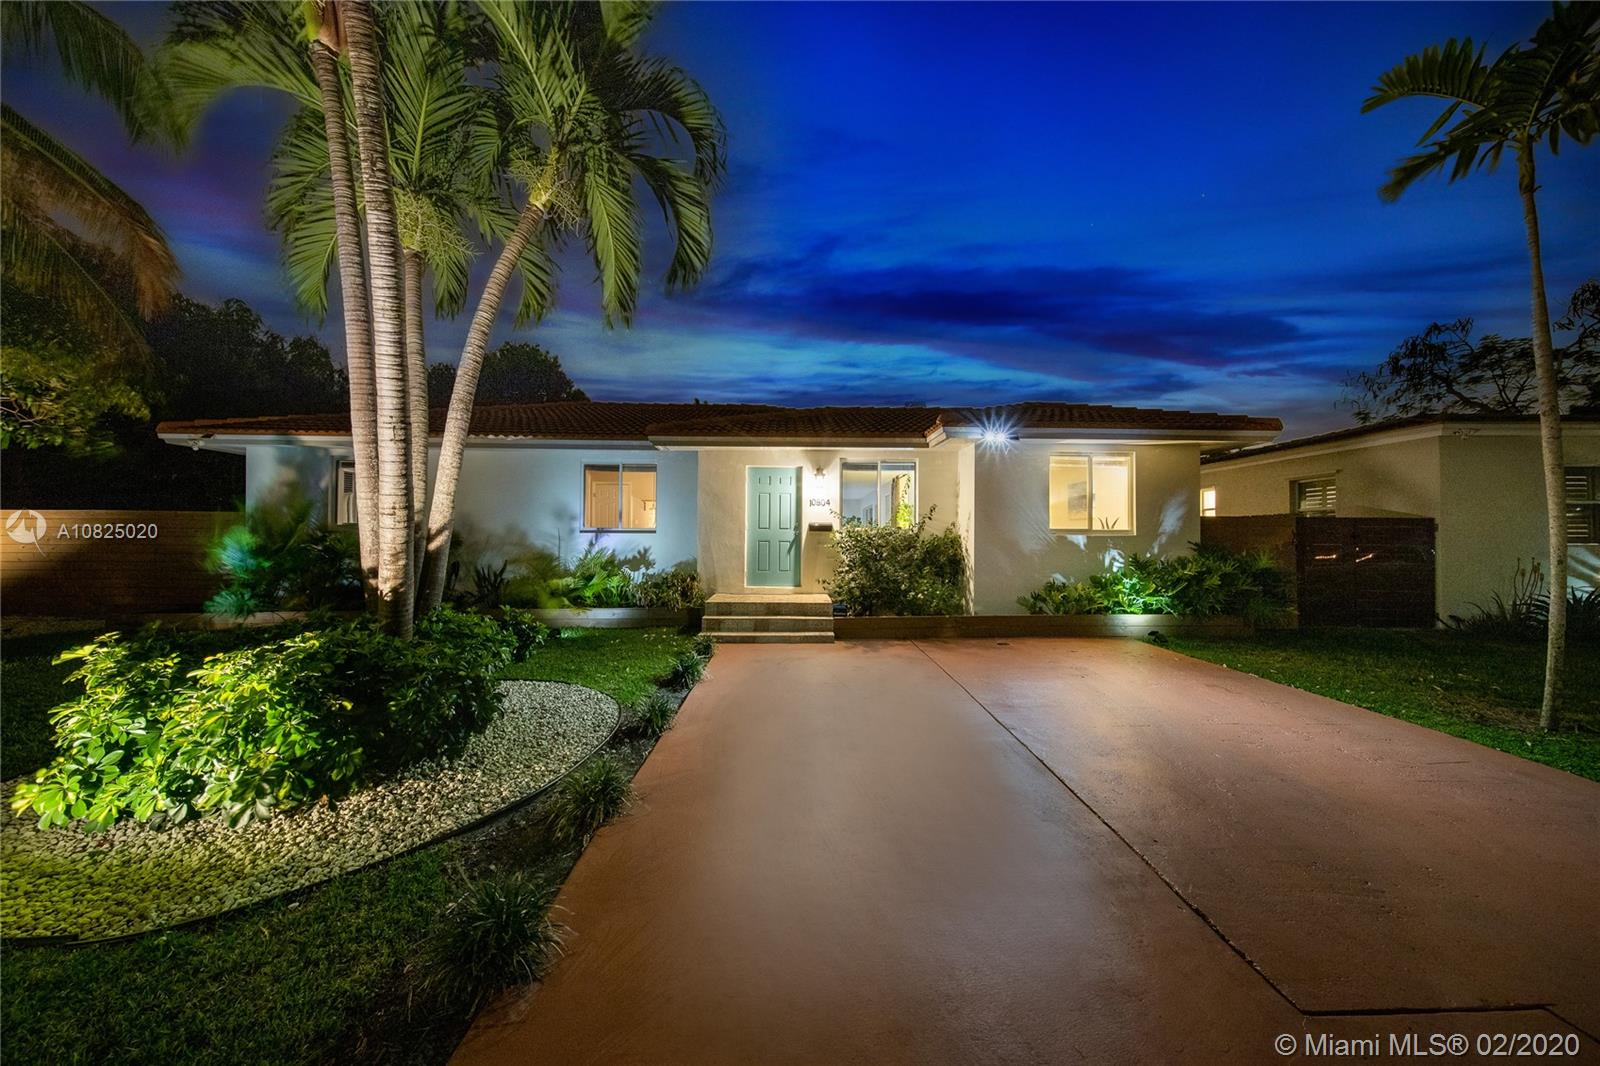 10804 NW 2nd Ave, Miami Shores, FL 33168